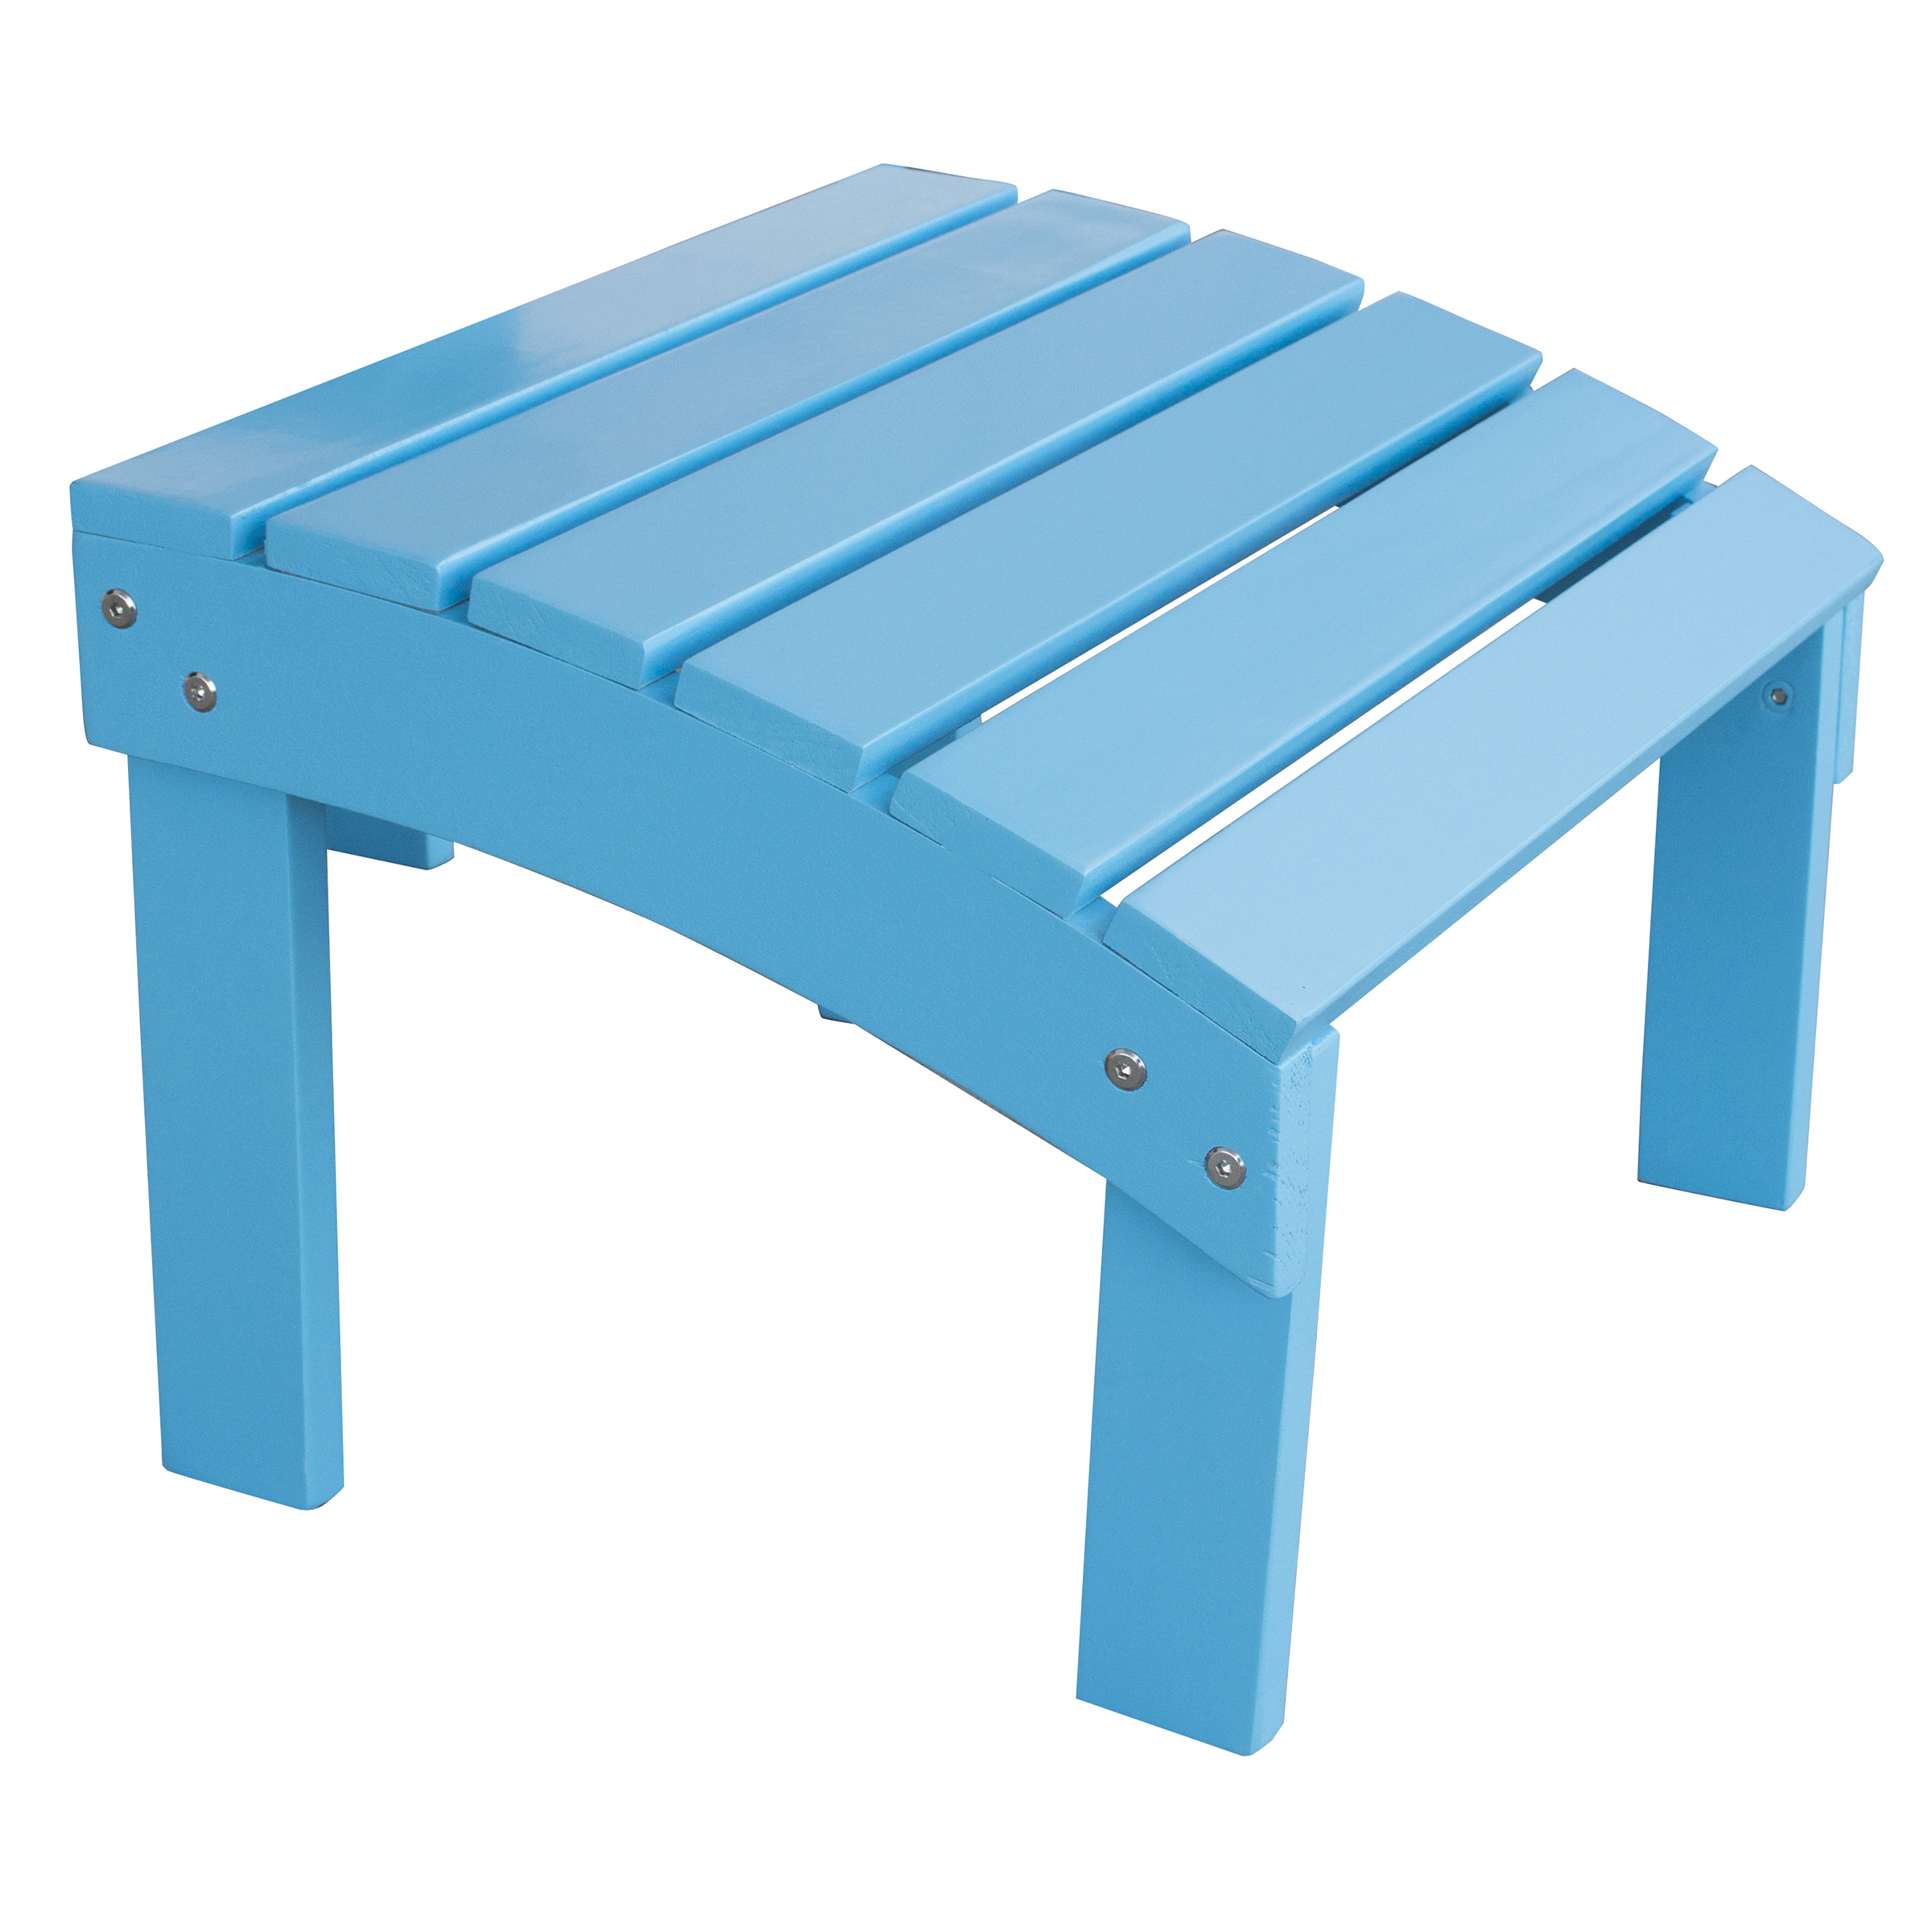 Solid Wood Adirondack Footrest Ottoman with Painted Finish -Aruba Blue